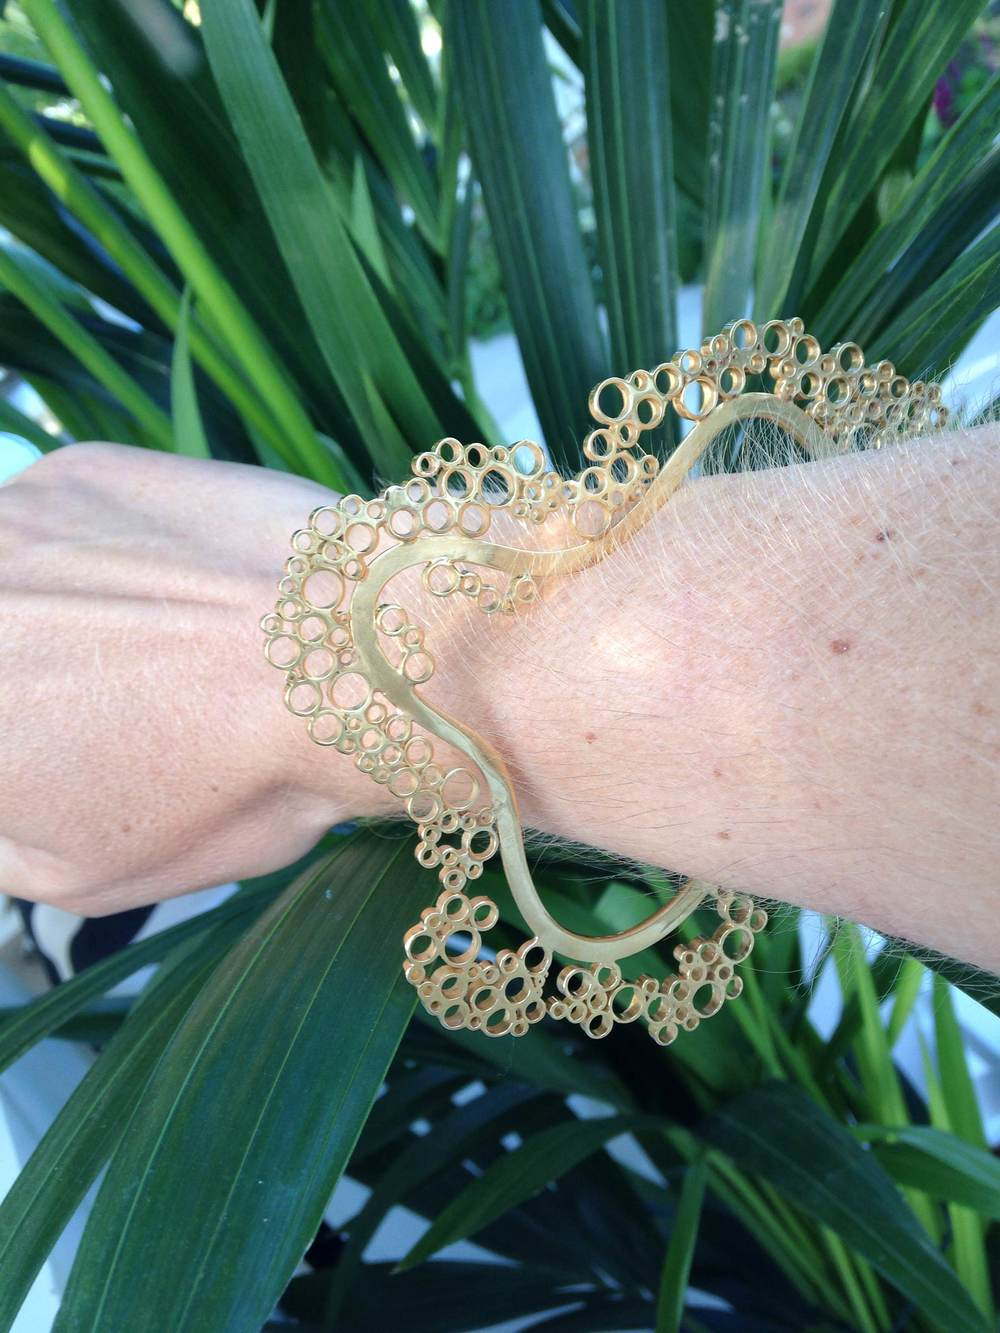 My Fizz bracelet in gold, handmade in Sterling silver with 18K gold plating, against the Chelsea Flower Show greenery